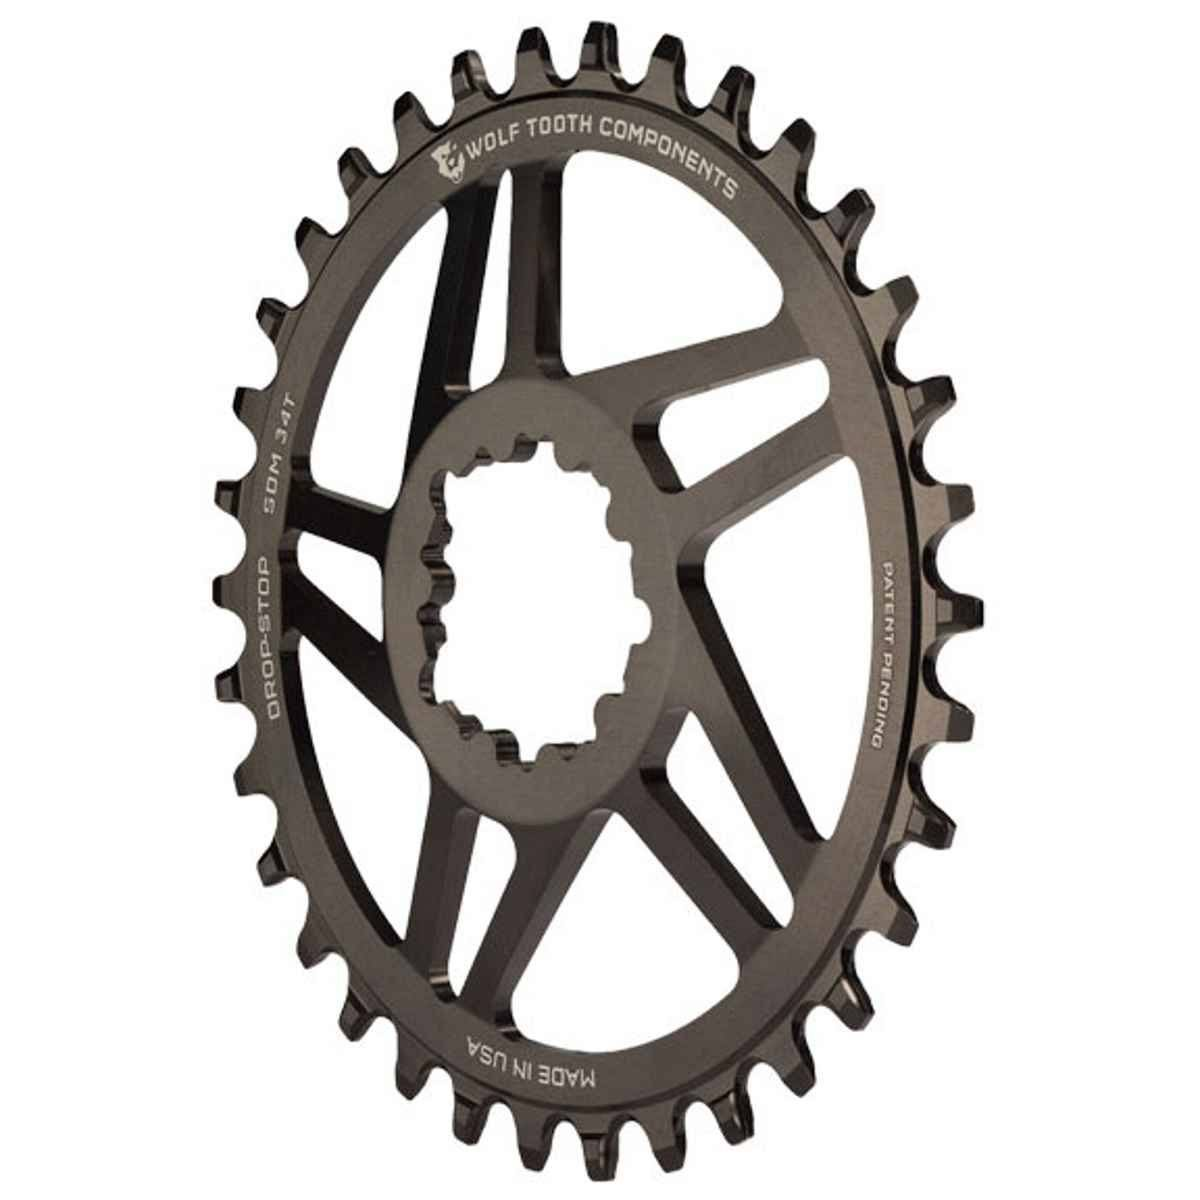 Wolf Tooth Components Direct Mount Chainring - 28T